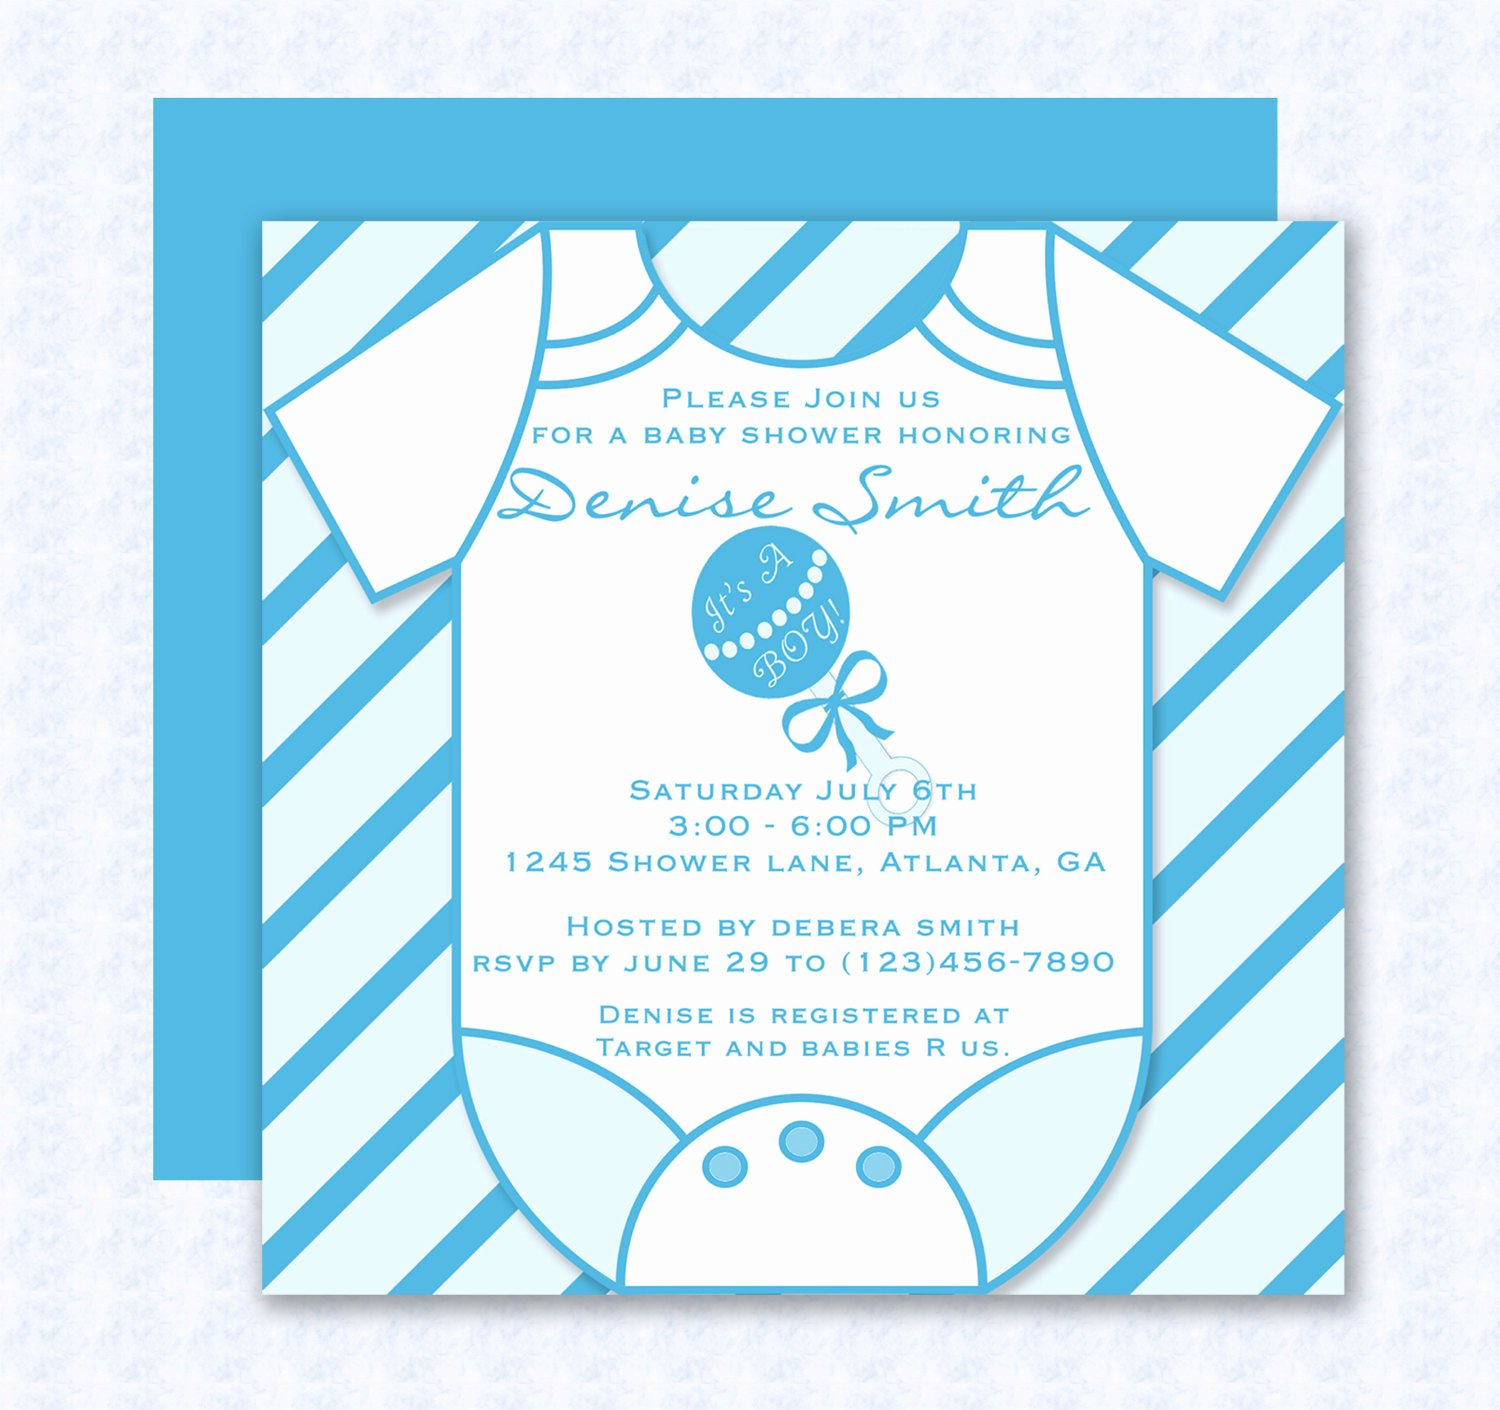 Baby Shower Invitations Templates Editable Beautiful Blue Esie Baby Shower Invitation Editable Template